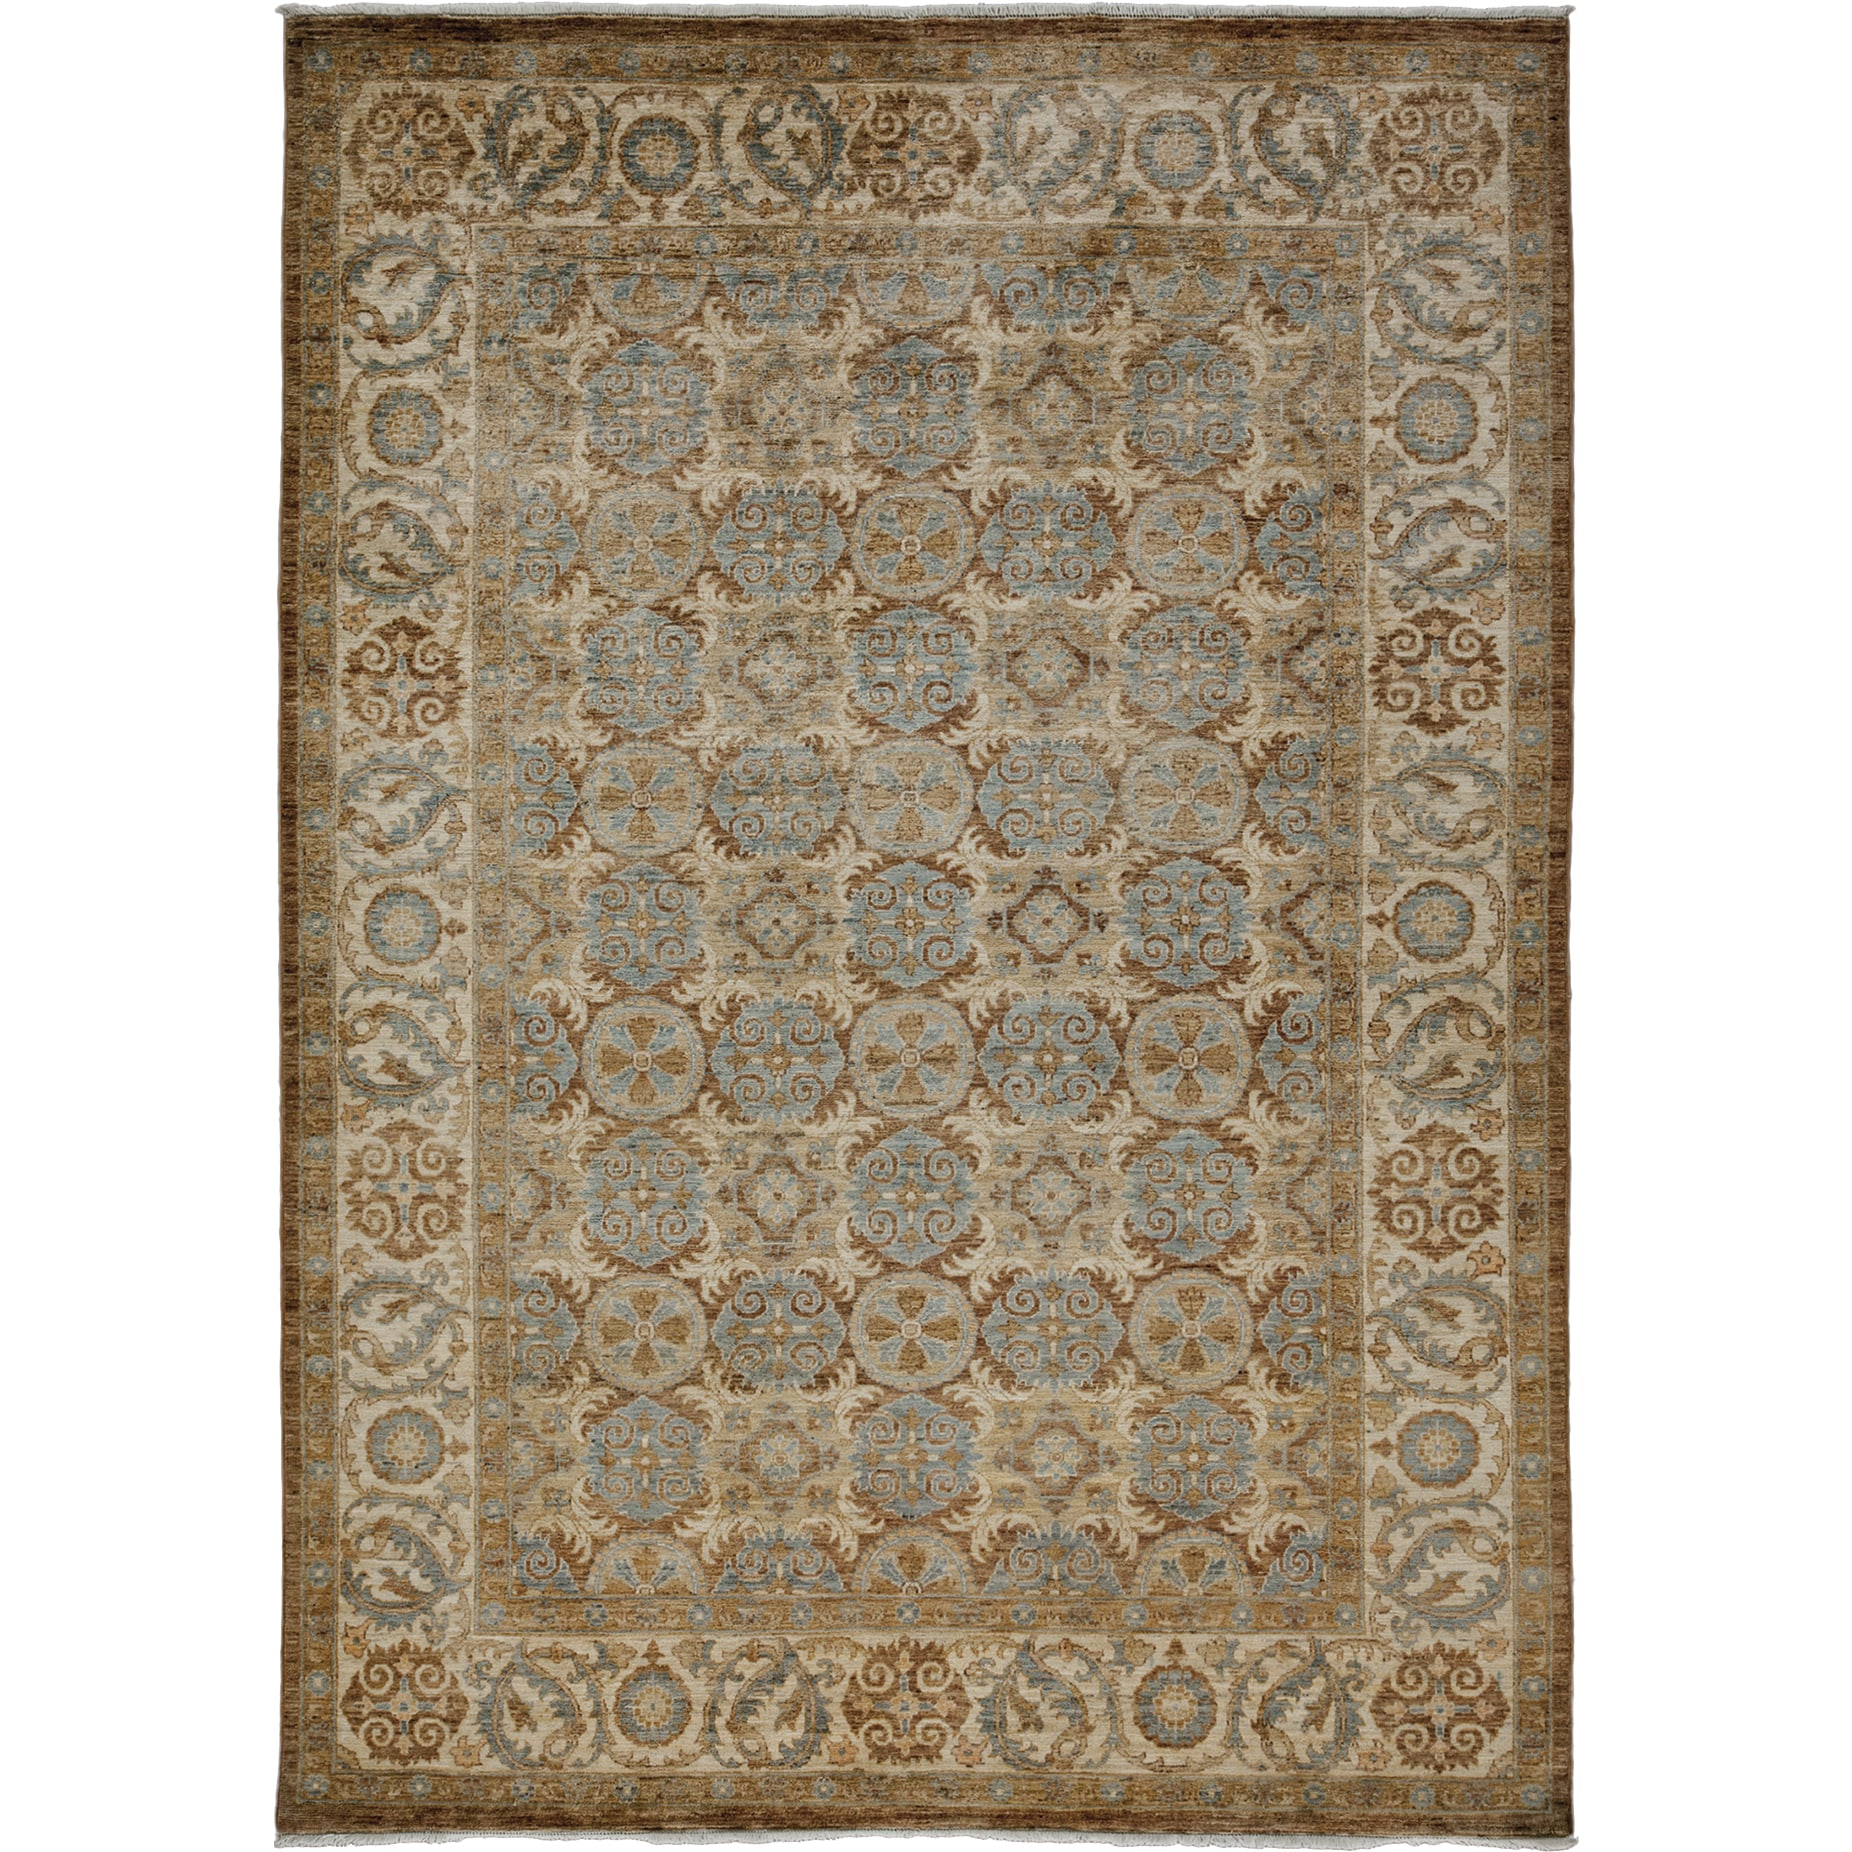 Harebet Yellow Wool Hand-knotted Oriental Area Rug (6'2 x 8'7)